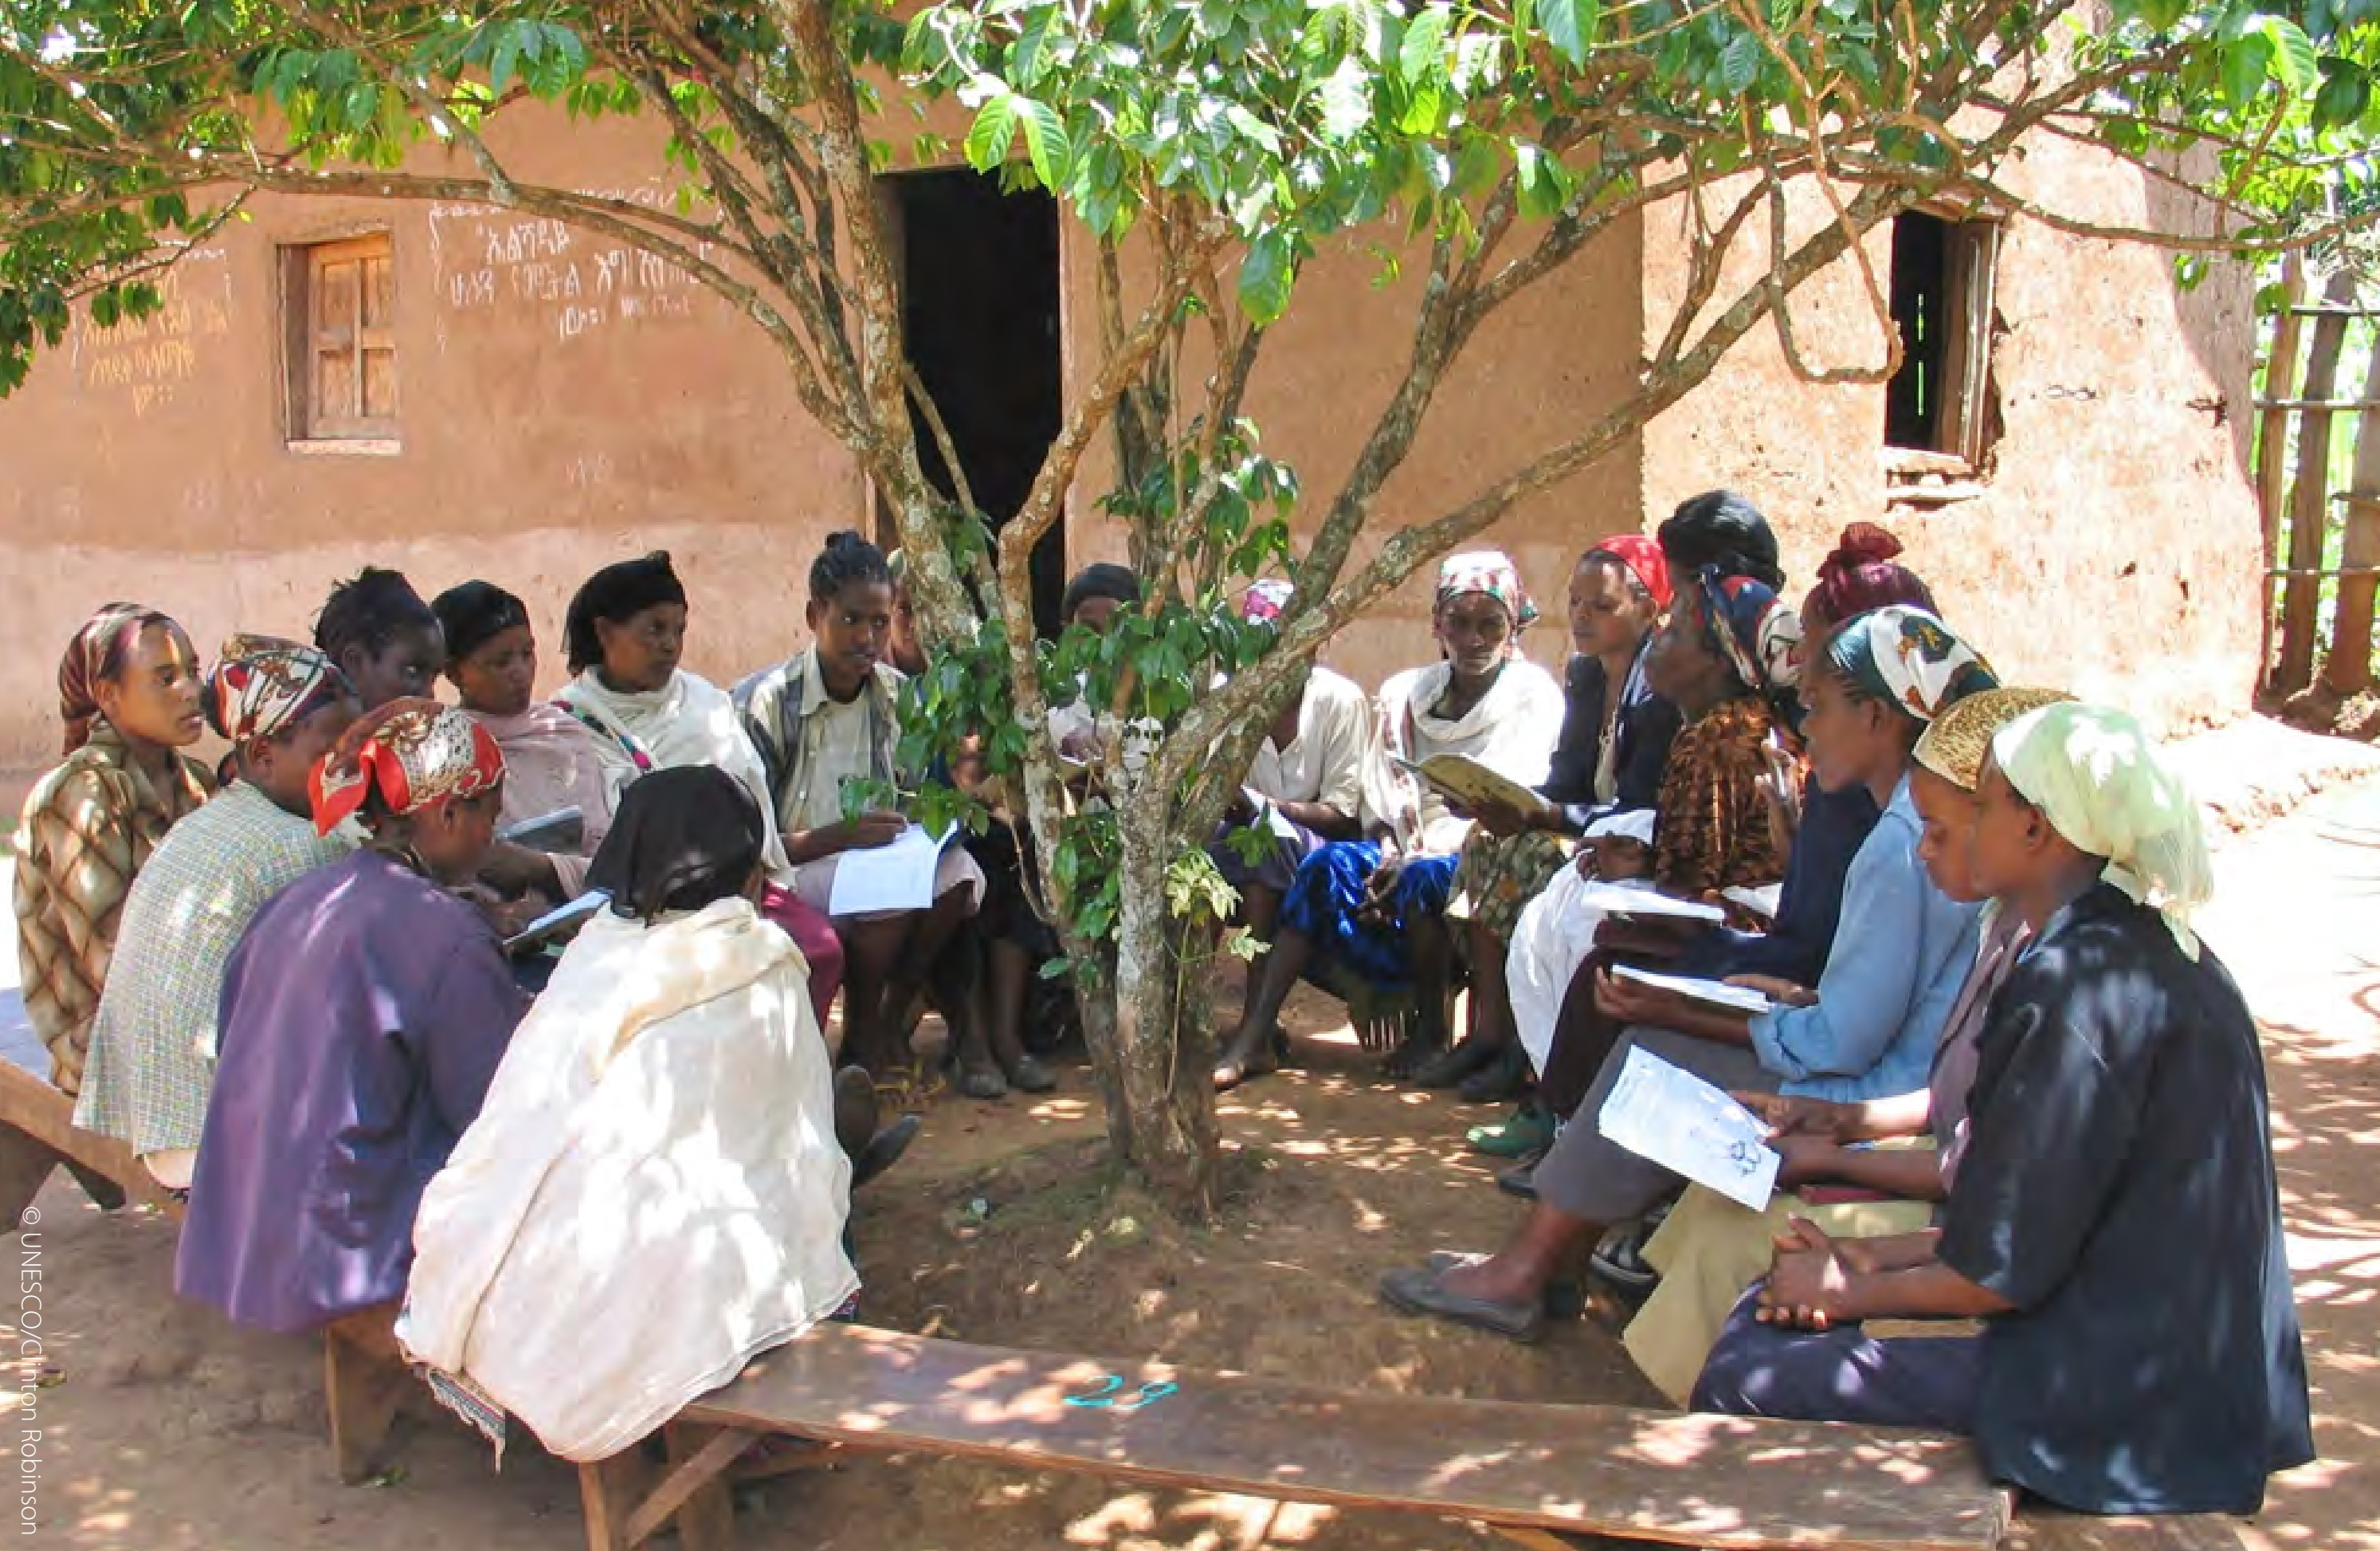 A group reading session in Ethiopia, 2016. Photo courtesy of UNESCO.